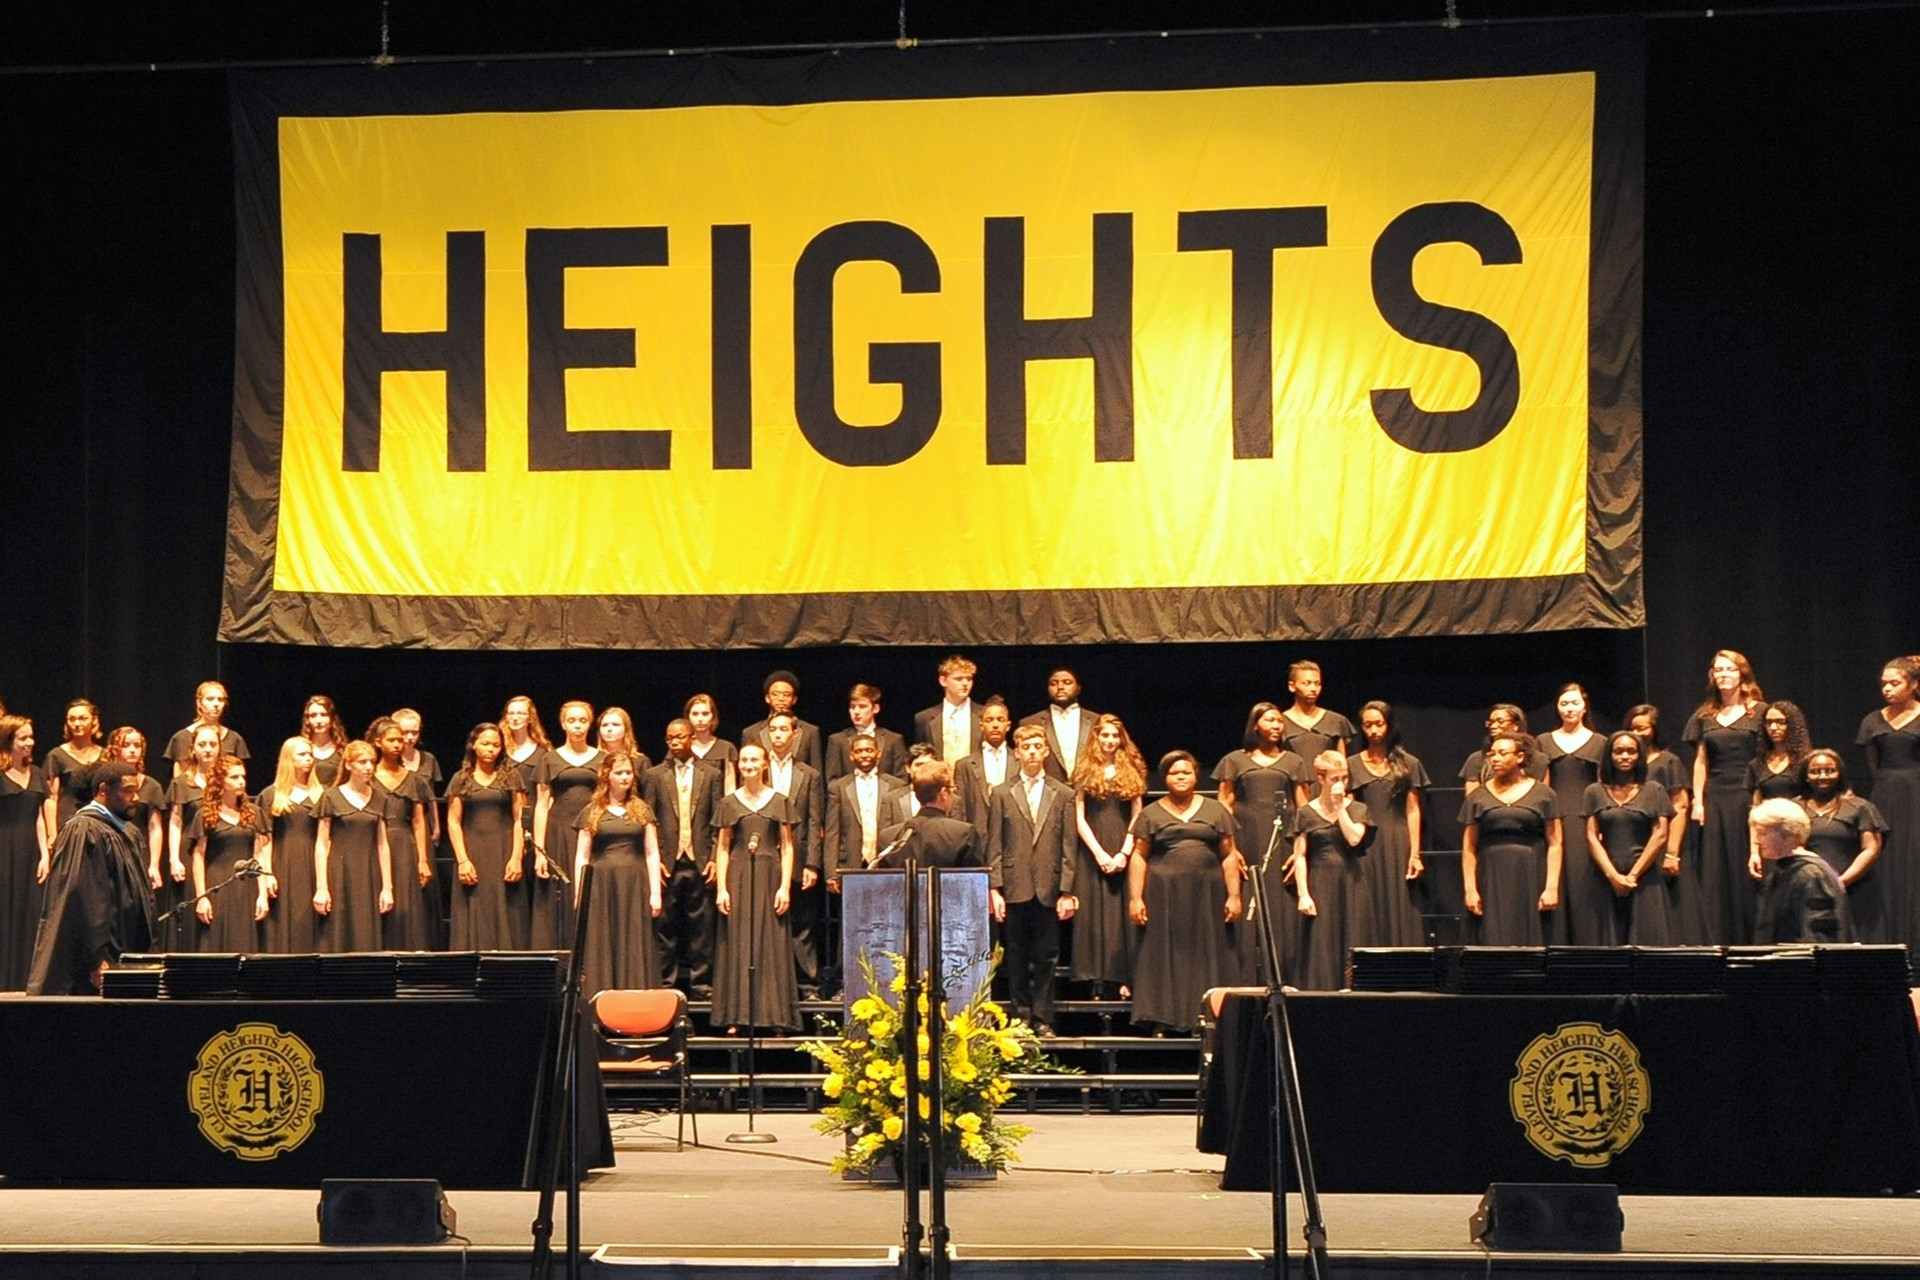 Heights High Commencement - June 6, 2016